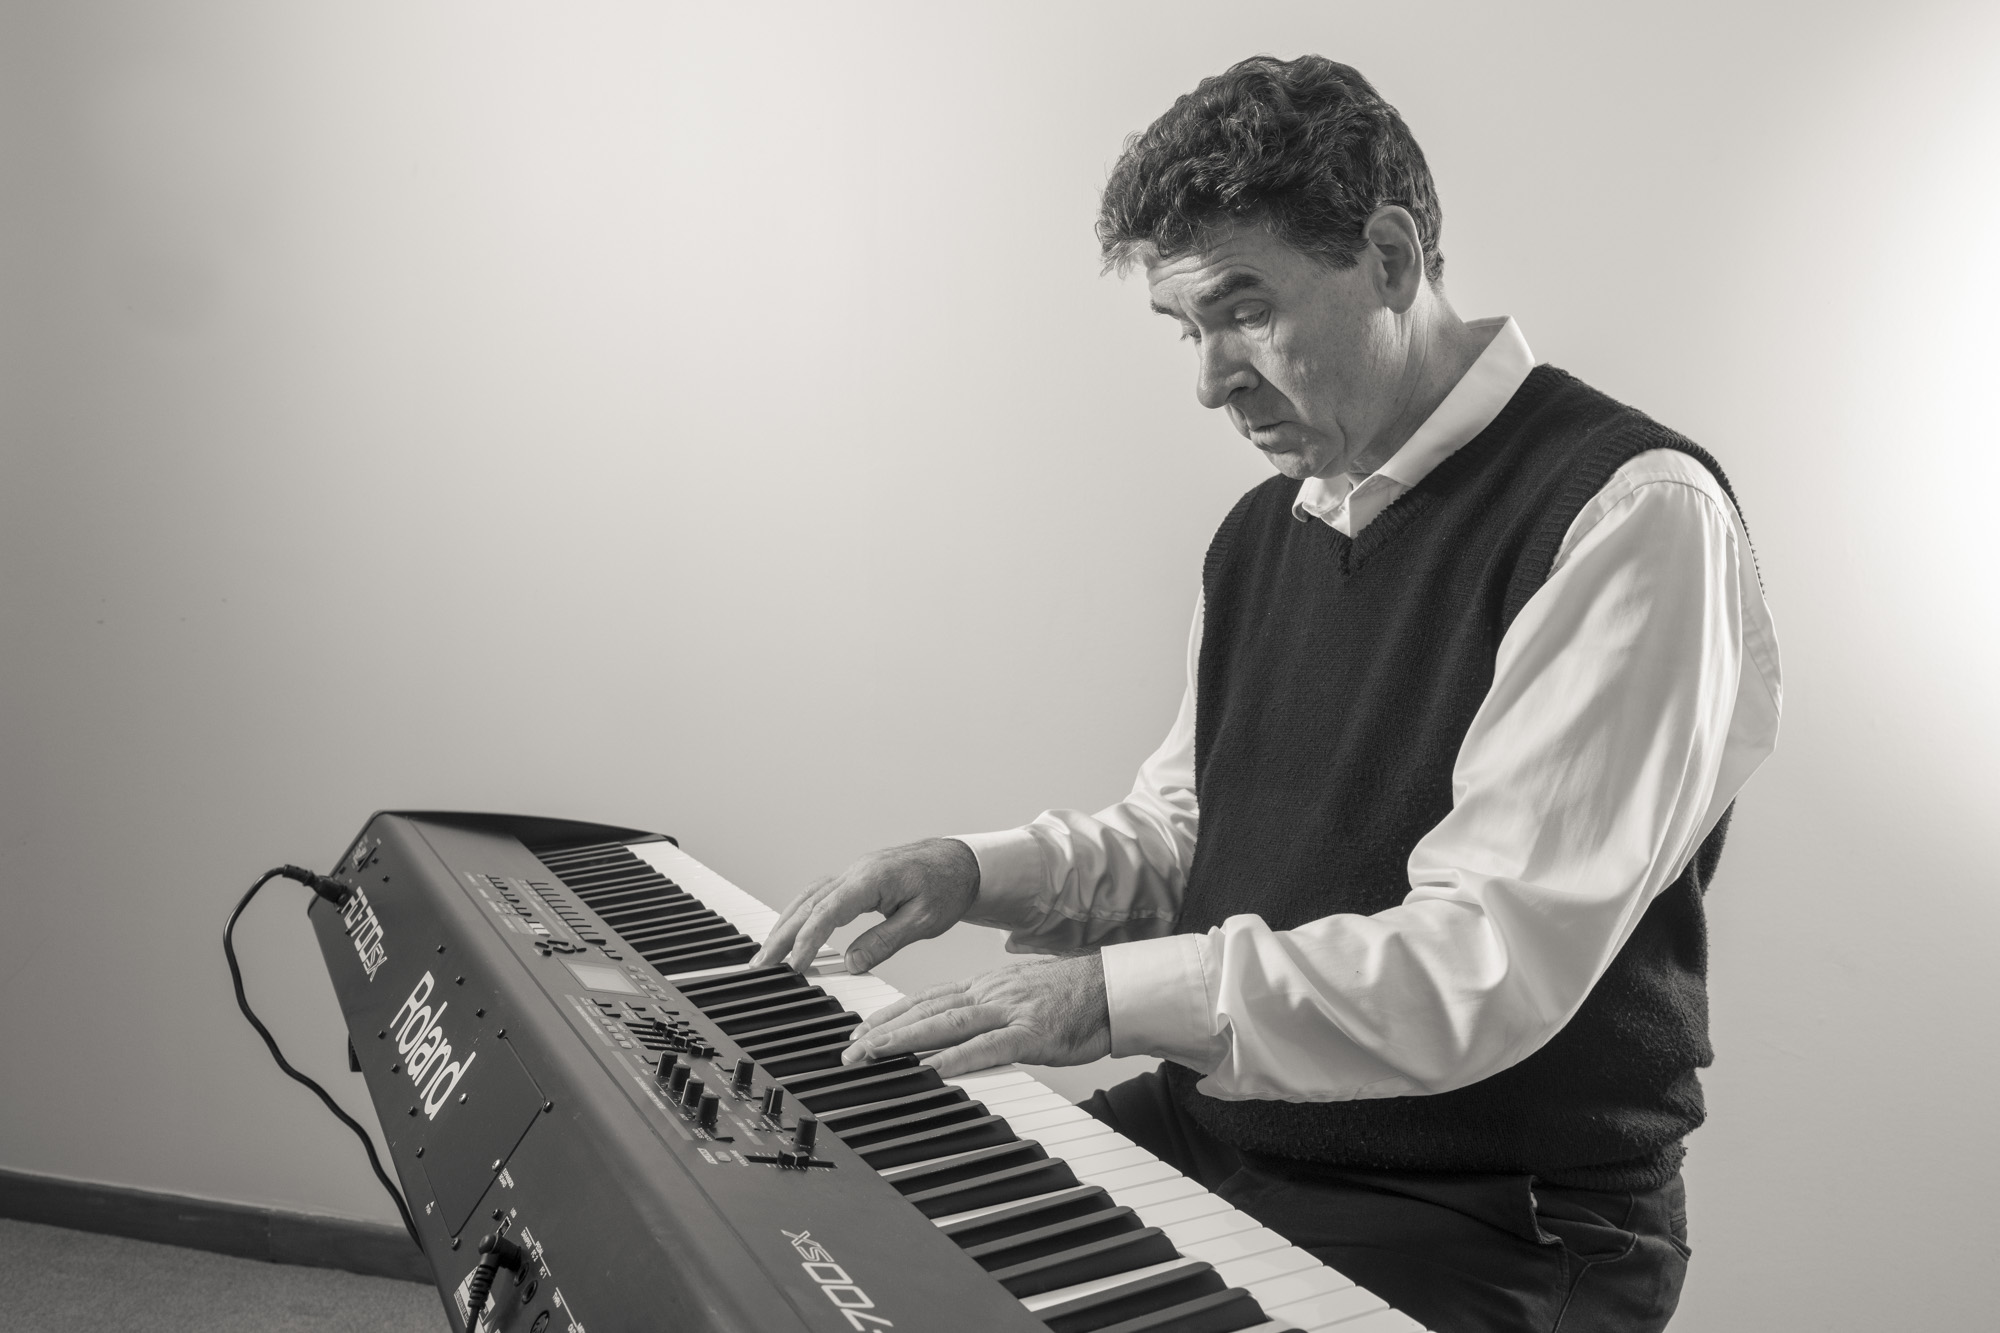 Chris Naughton: Auckland-based piano player